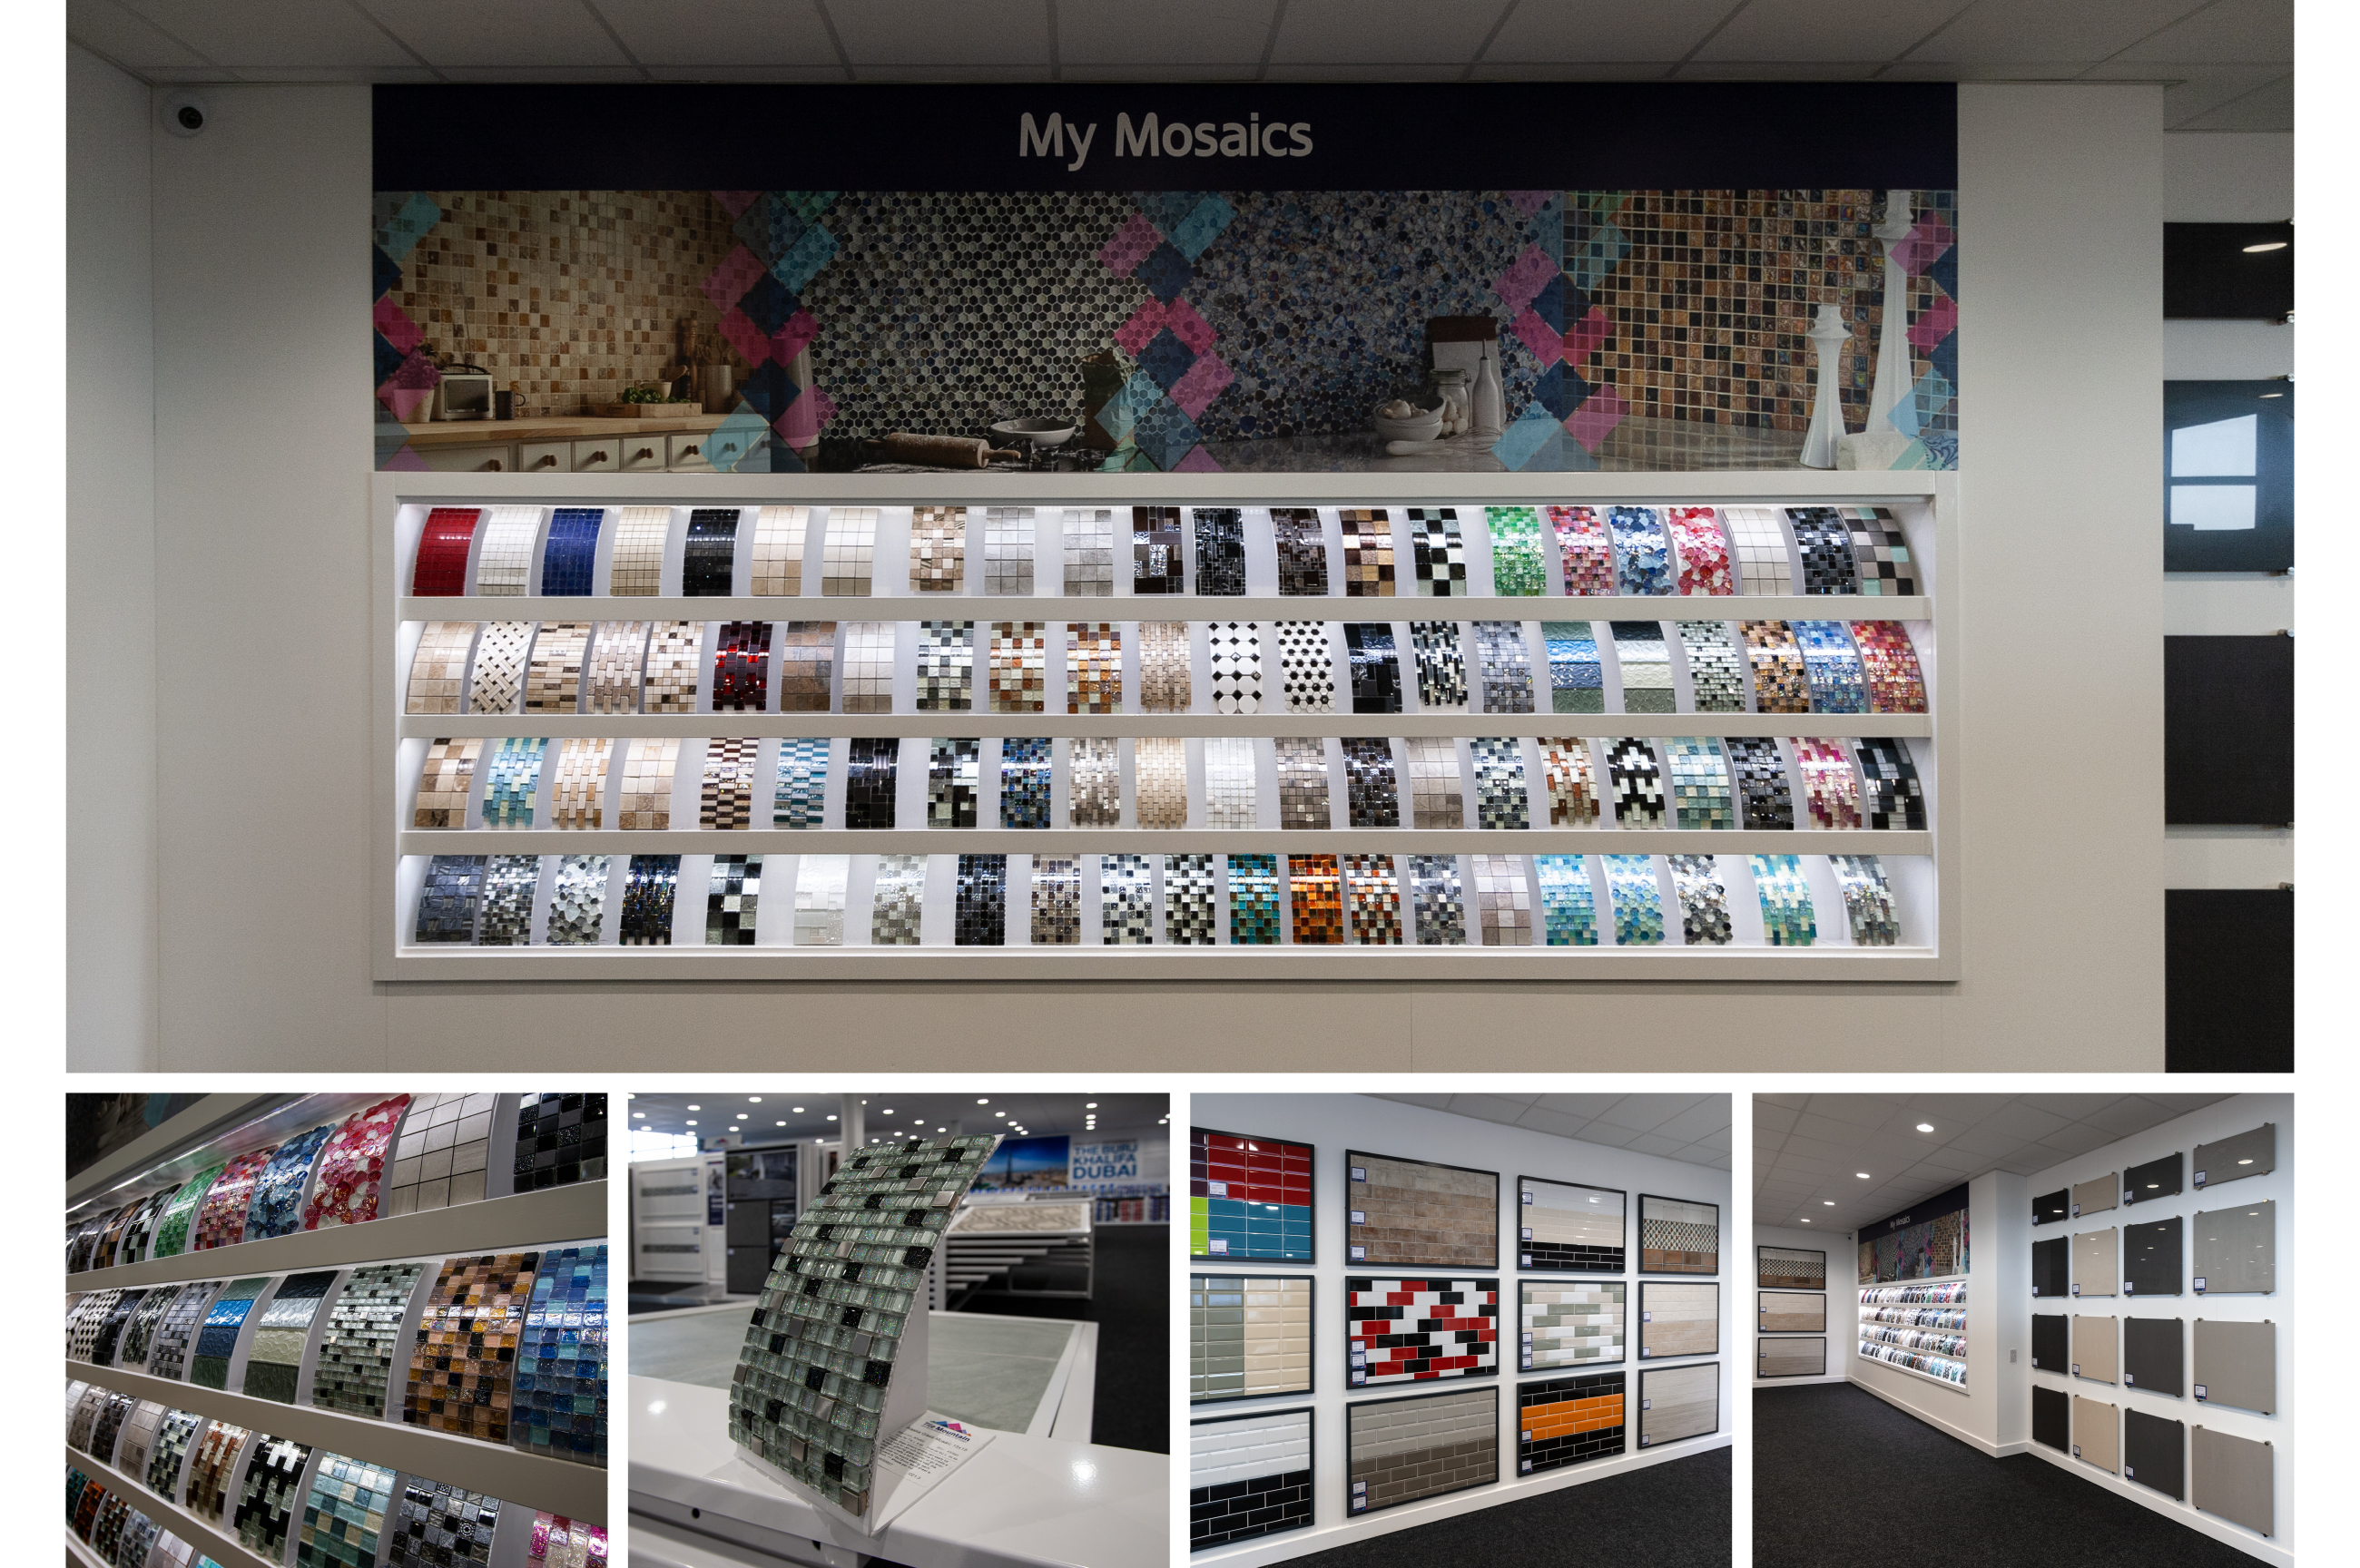 Tile Mountain showroom interior design - mosaic and kitchen wall tile displays